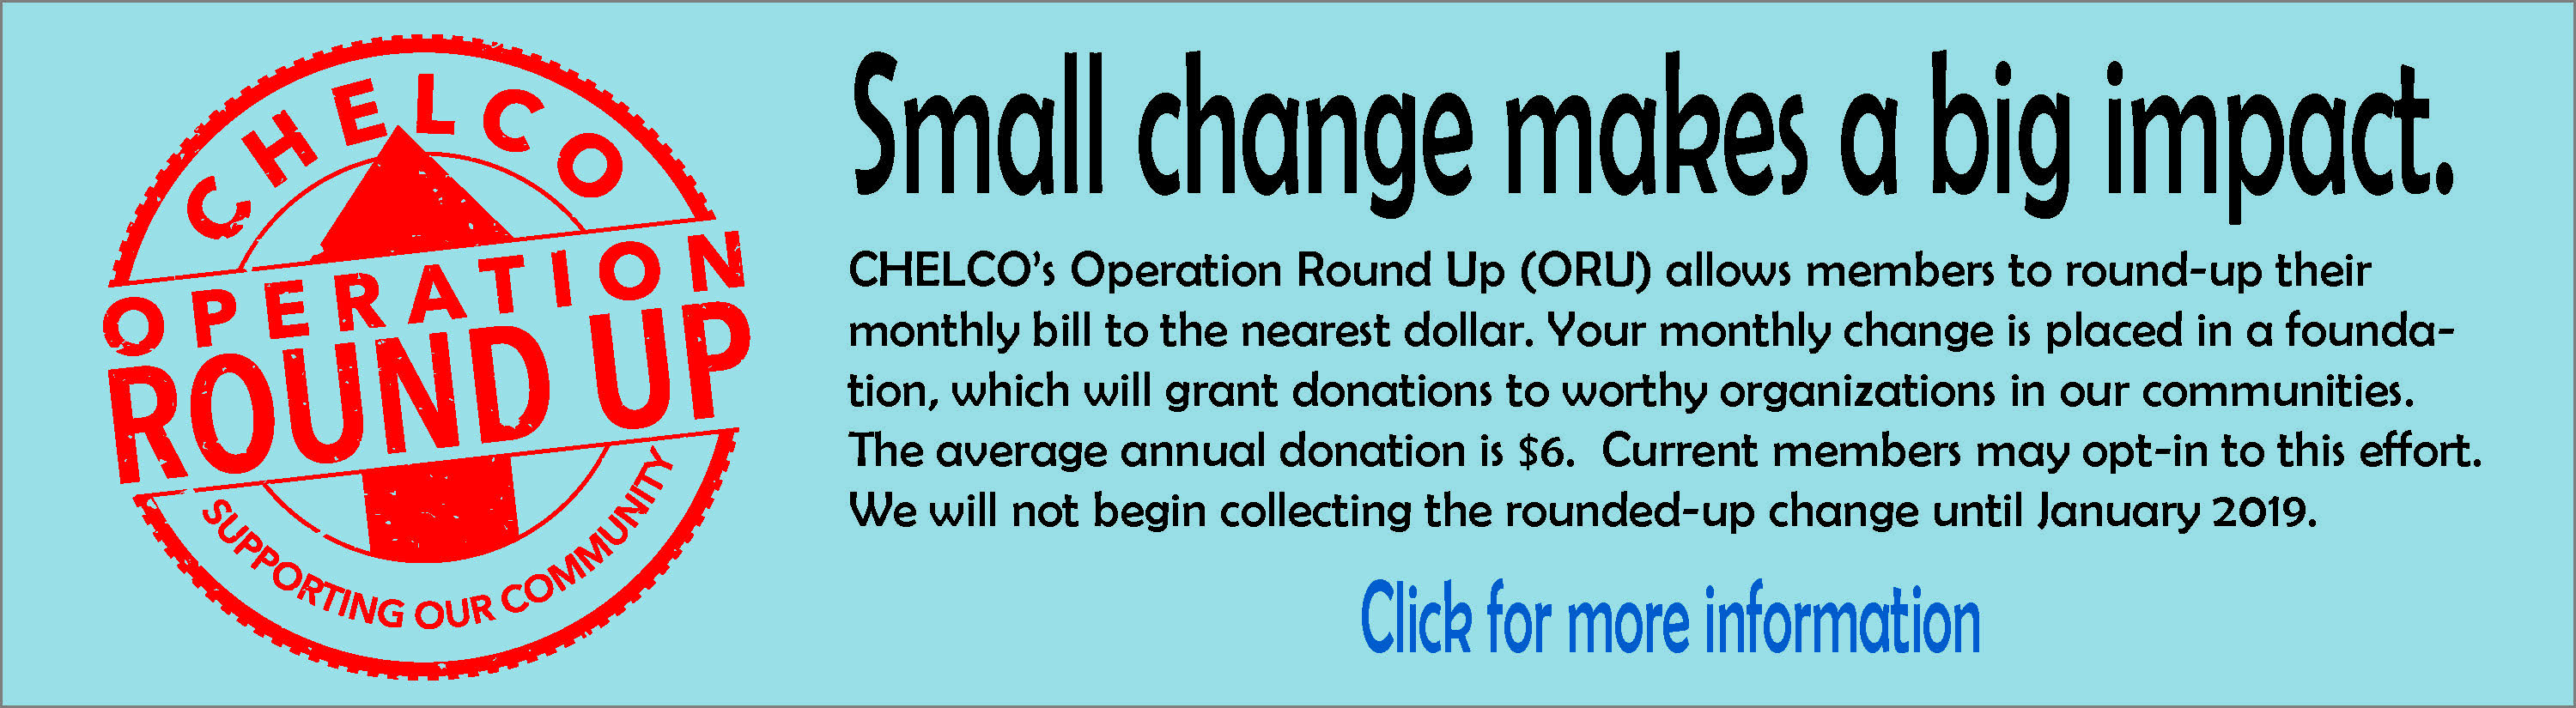 Operation Round Up web banner